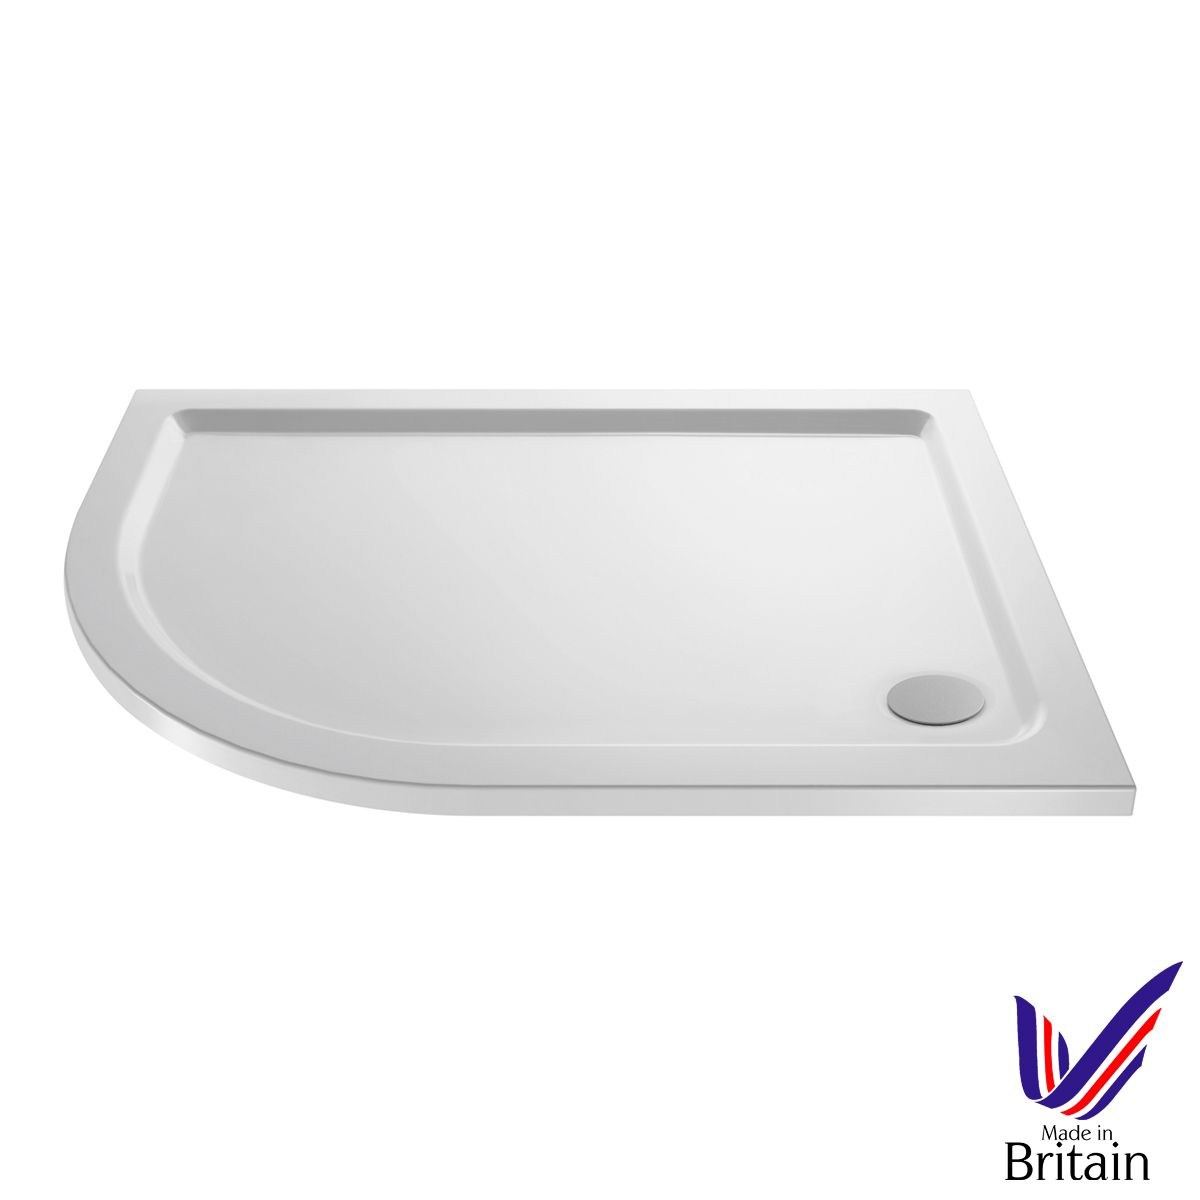 1000 x 900 Shower Tray Offset Quadrant Low Profile Left Hand by Pearlstone